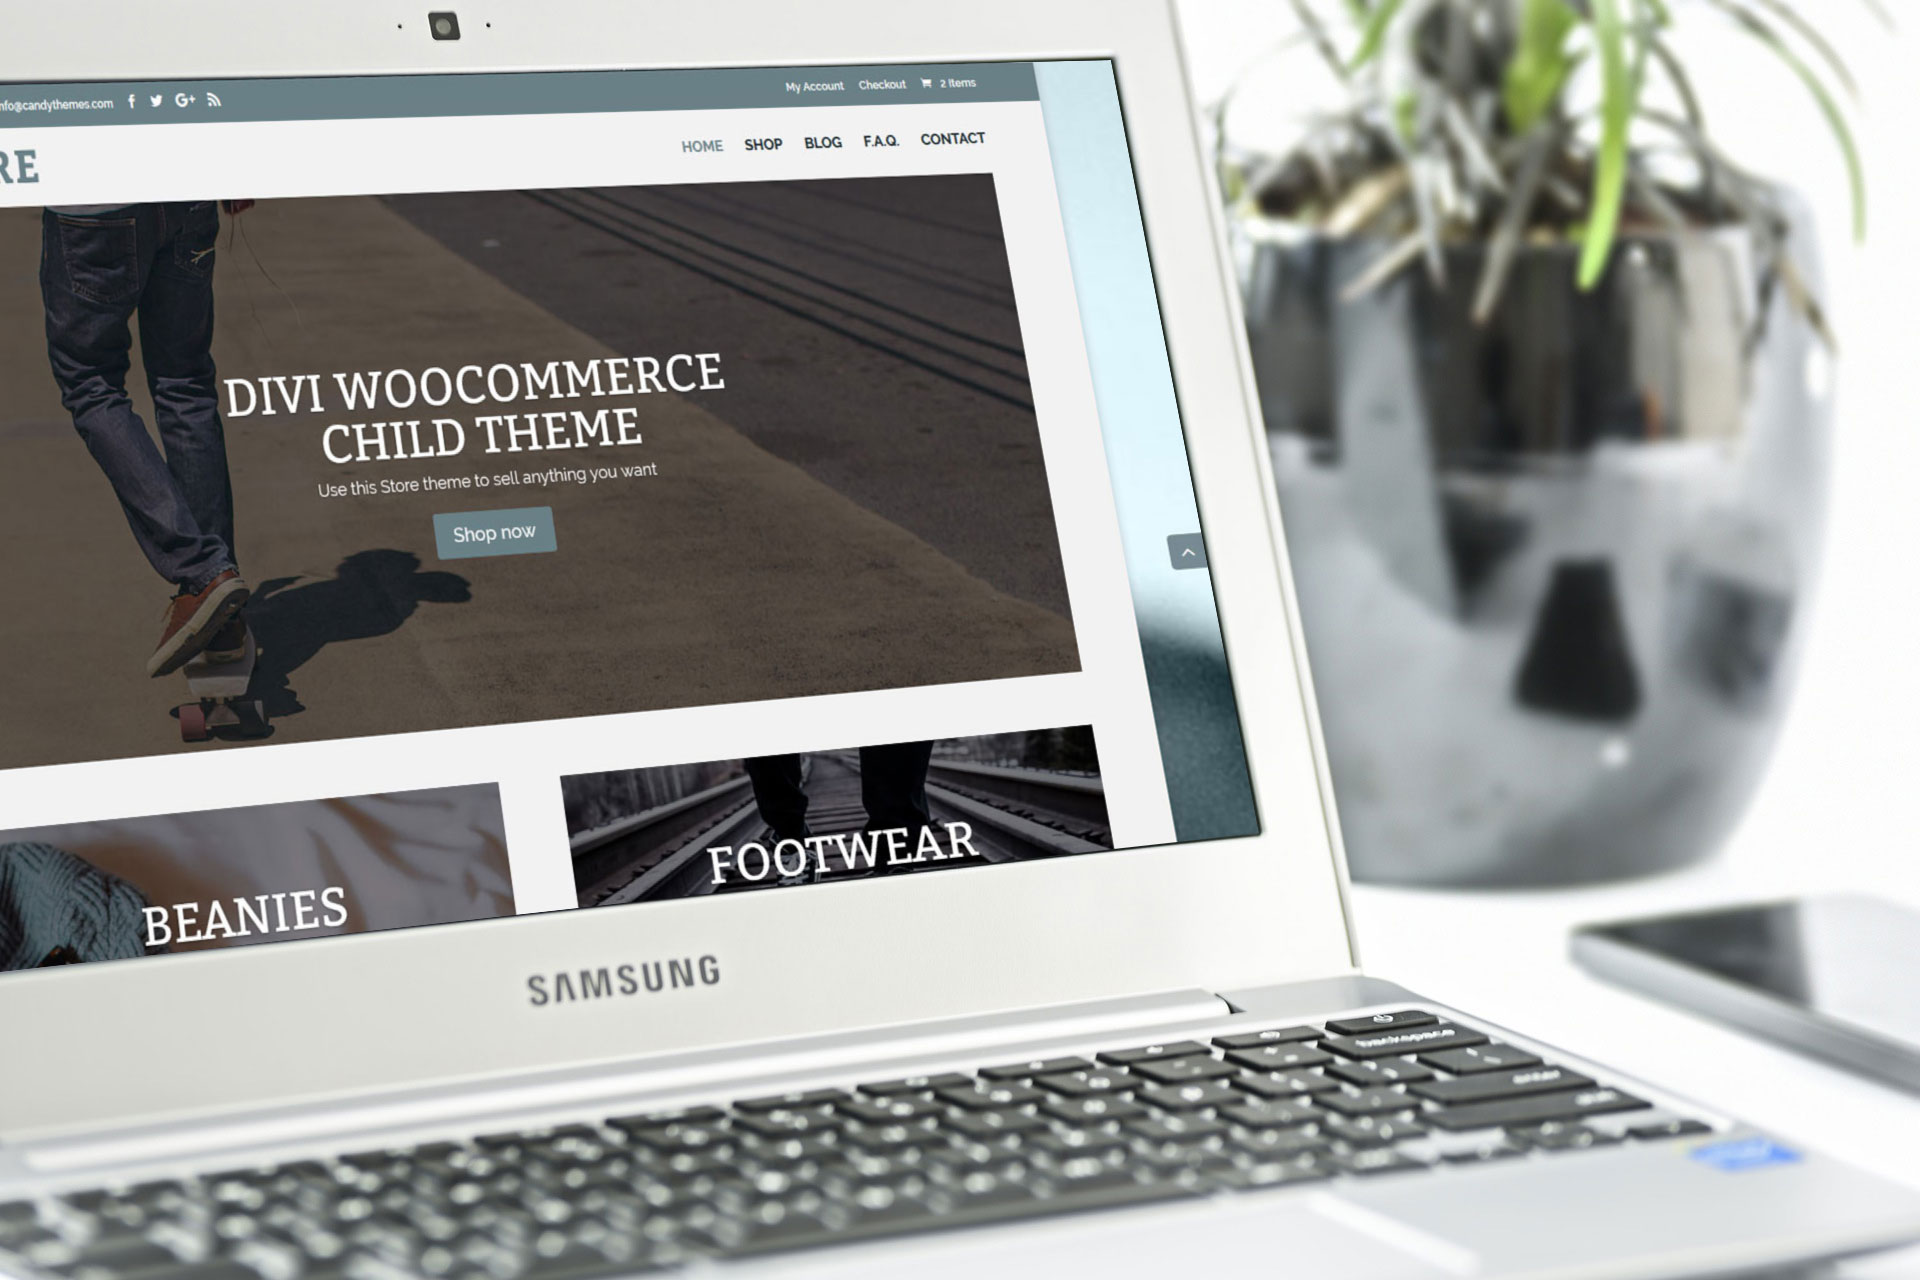 Store is available now, a brand new ecommerce Divi child theme